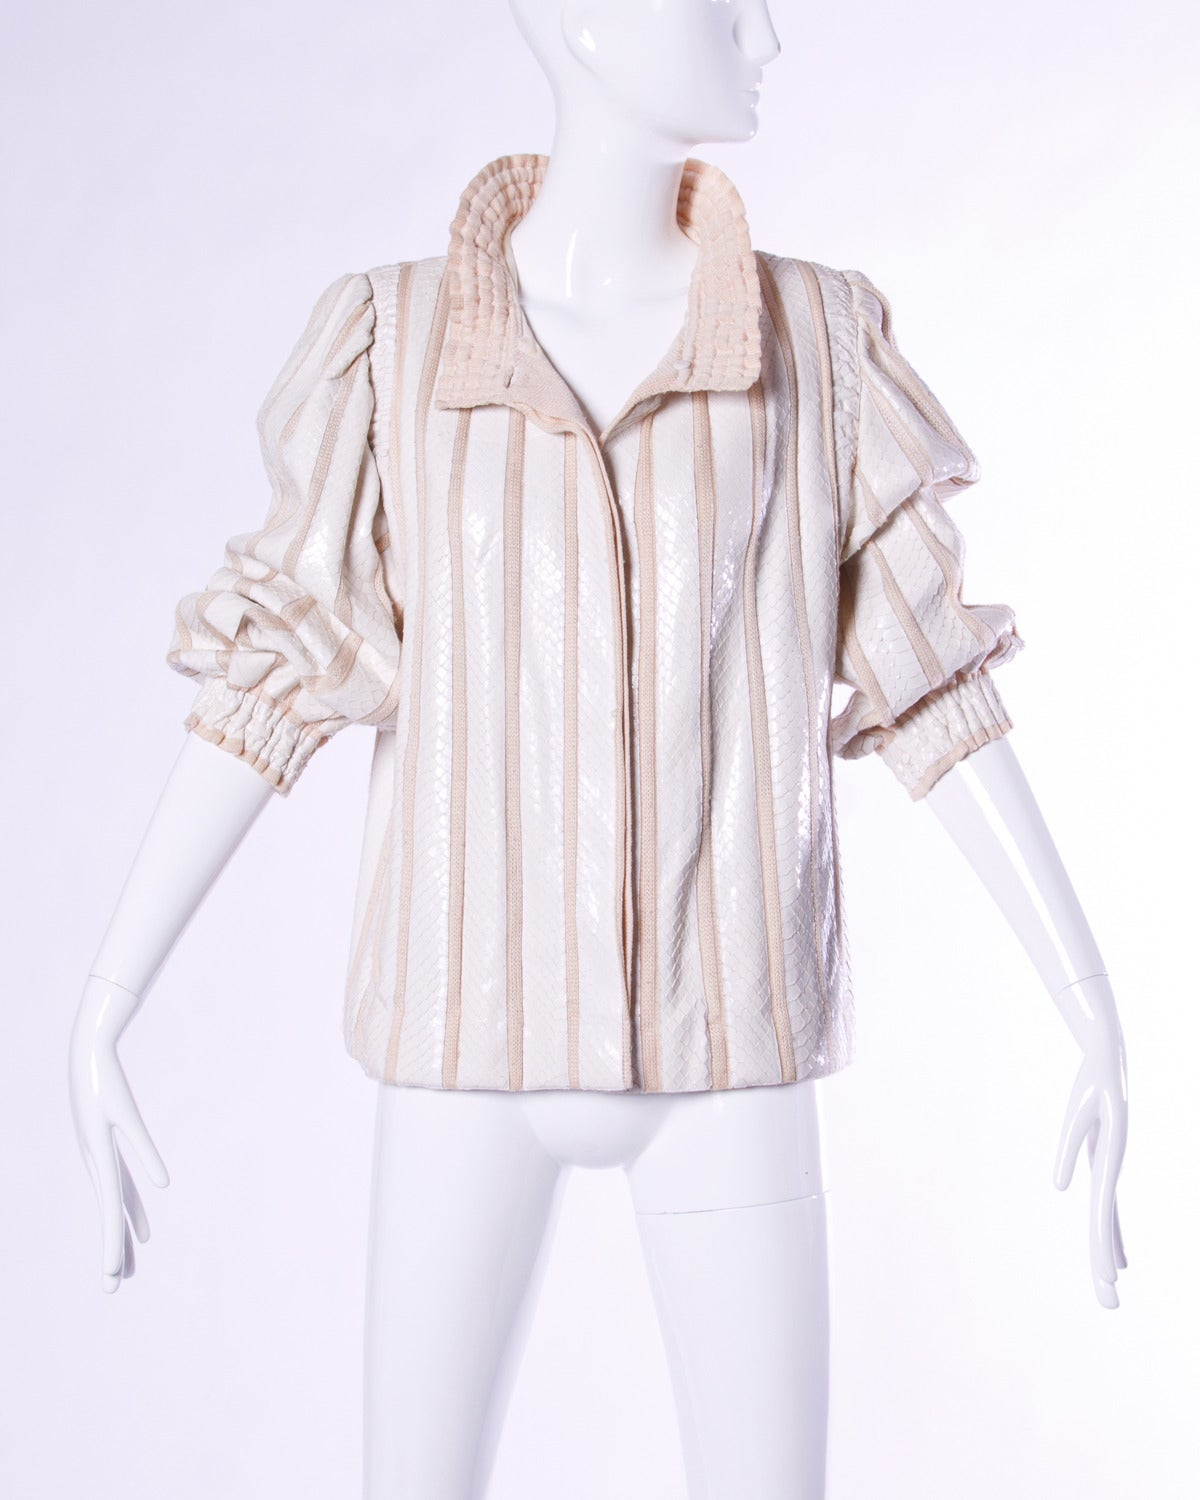 Vintage white reptile skin jacket with ribbed knit panels and full balloon sleeves. Ruffled collar and sleeve cuffs.  Details:  Fully Lined Side Pockets Shoulder Pads Sewn Into Lining Front Button Closure Color: Cream/ Beige Fabric: Reptile